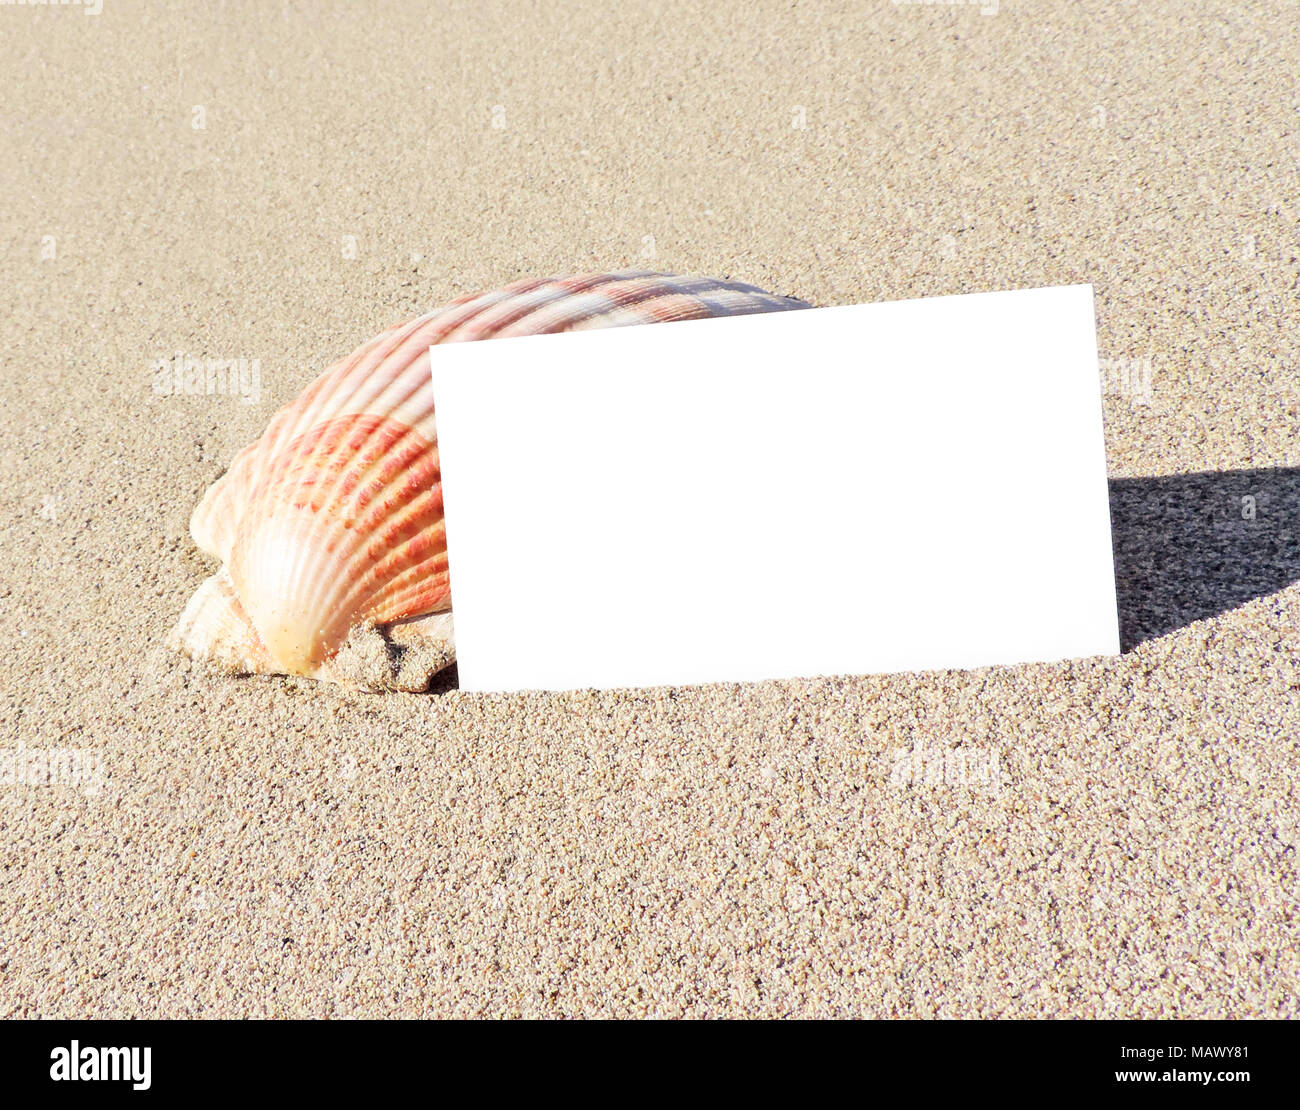 Blank white card or greeting card on the beach with copy space.  Summer holiday or beach vacation scene with shells and starfish. Holiday greetings. - Stock Image